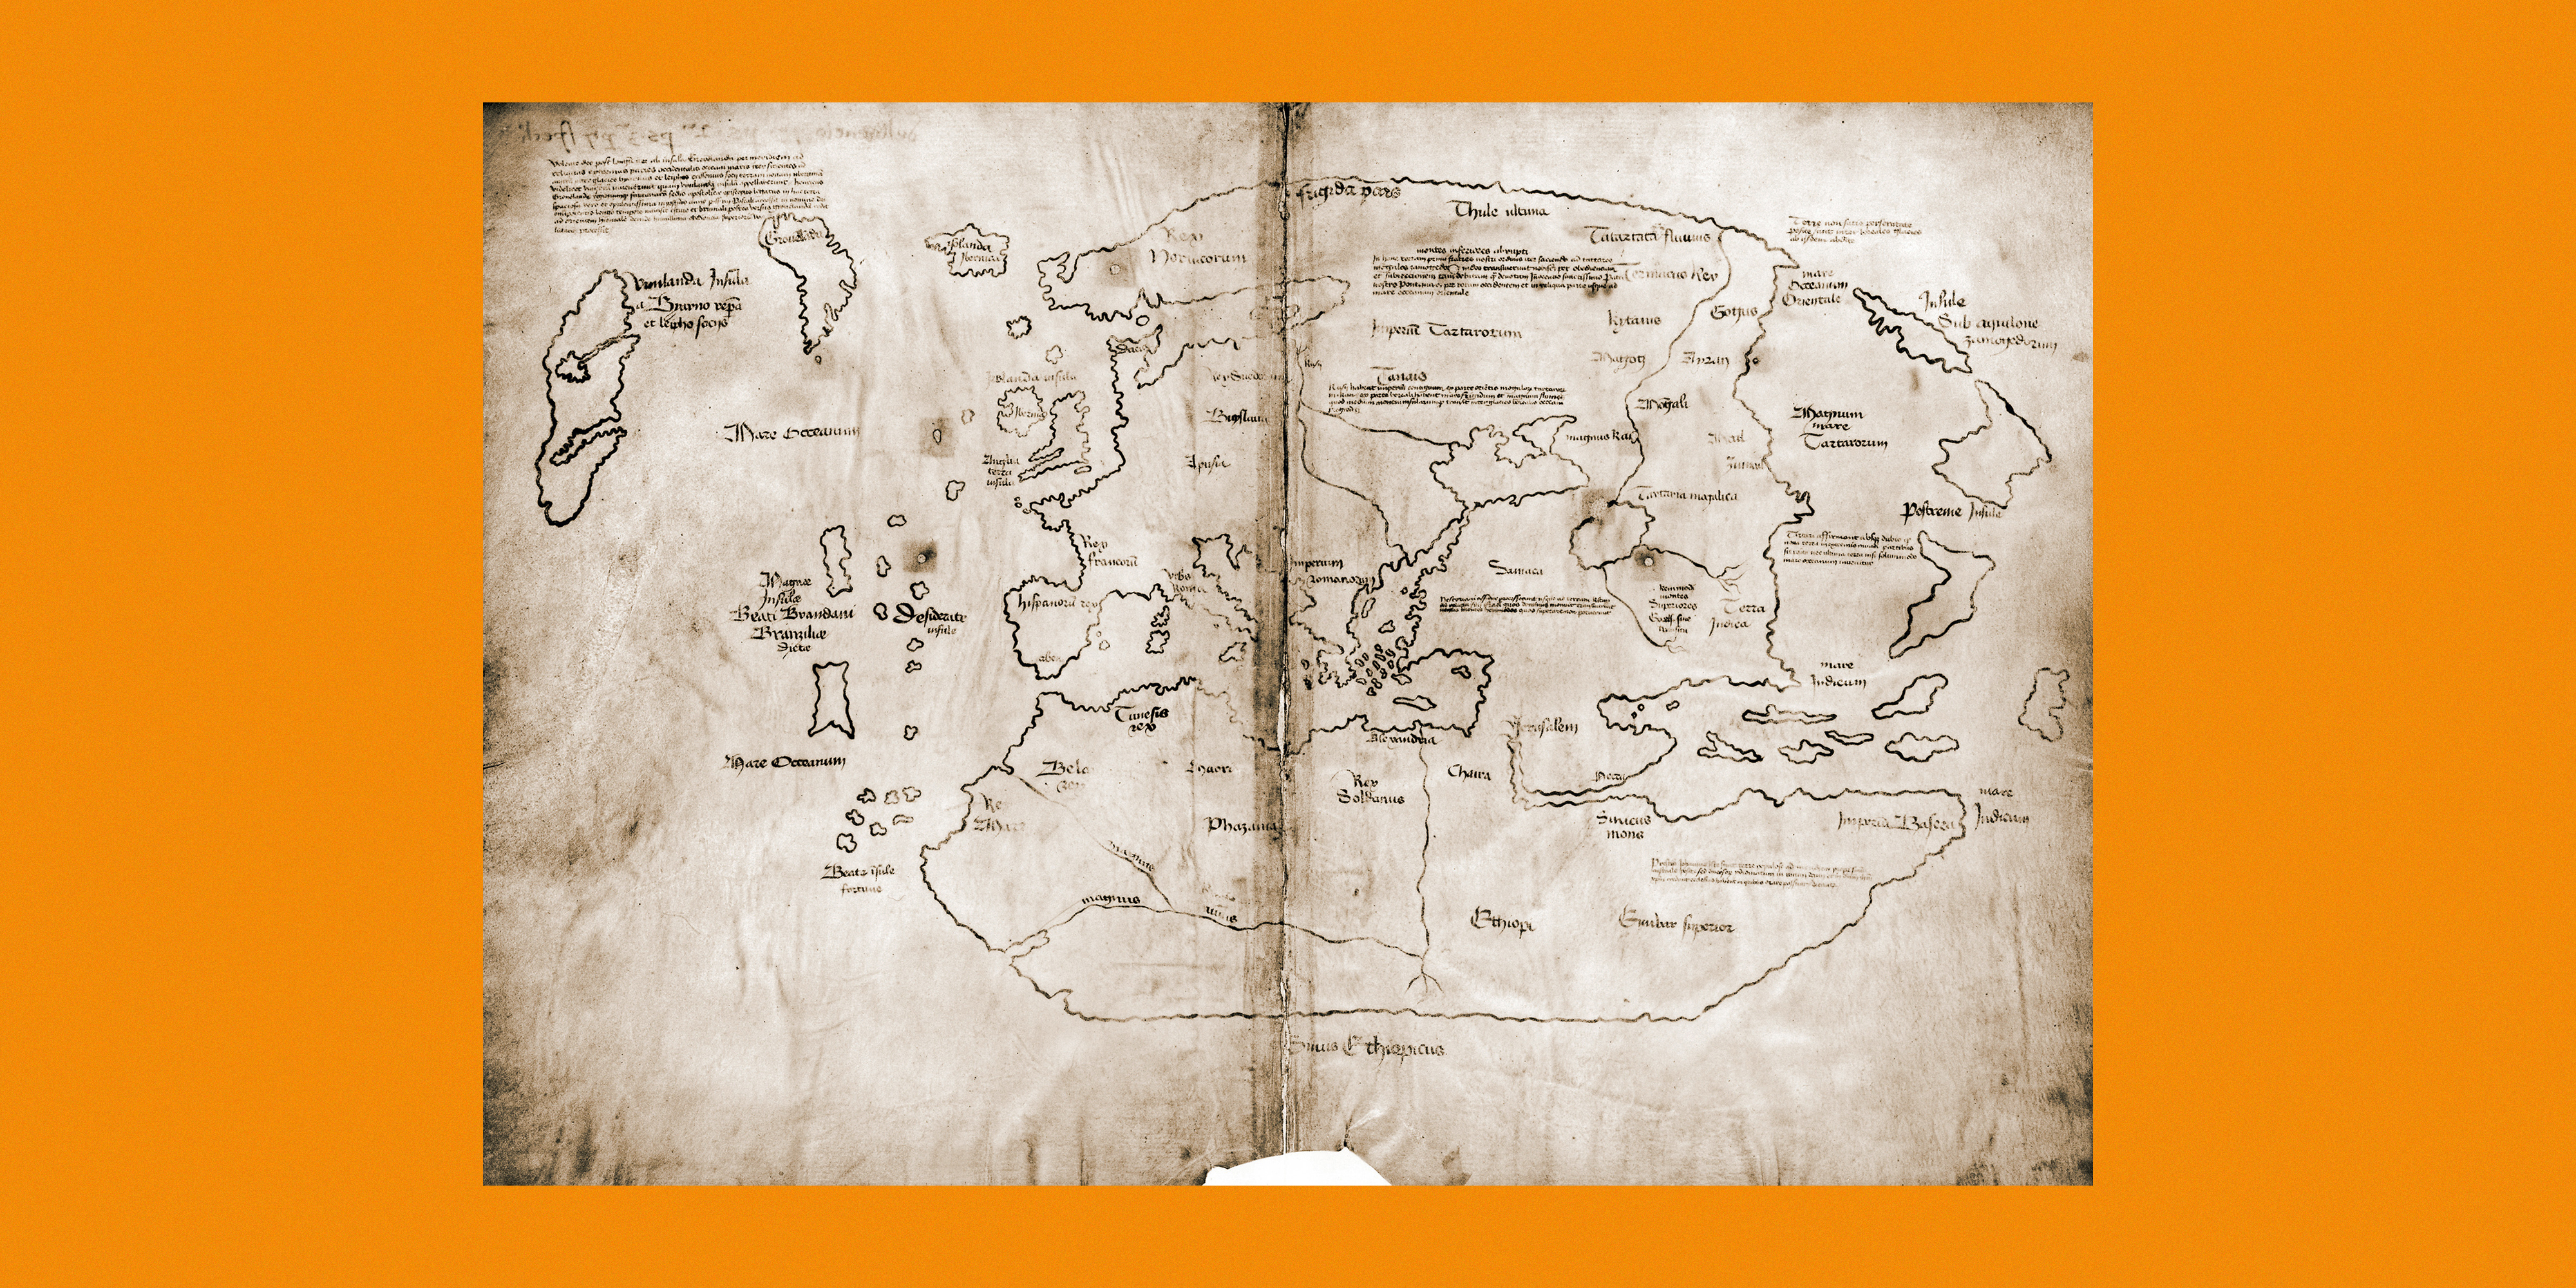 Yale University's controversial Vinland Map is a fake, new study confirms